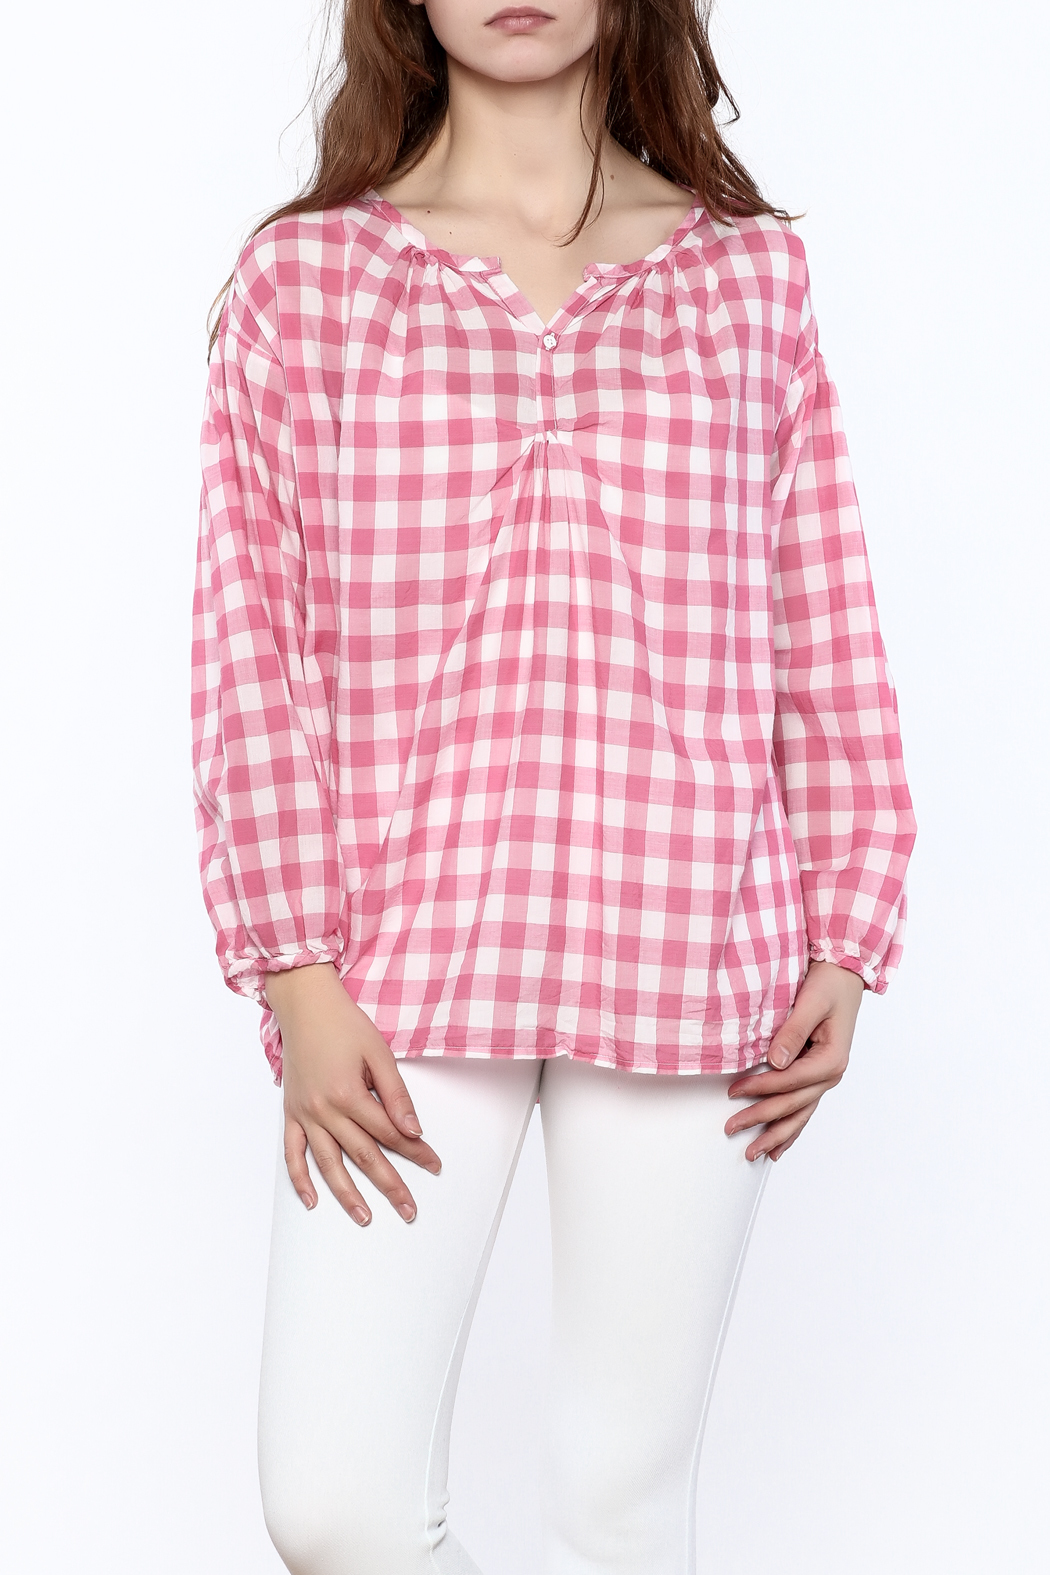 P.S. Shirt Pink Gingham Blouse - Main Image